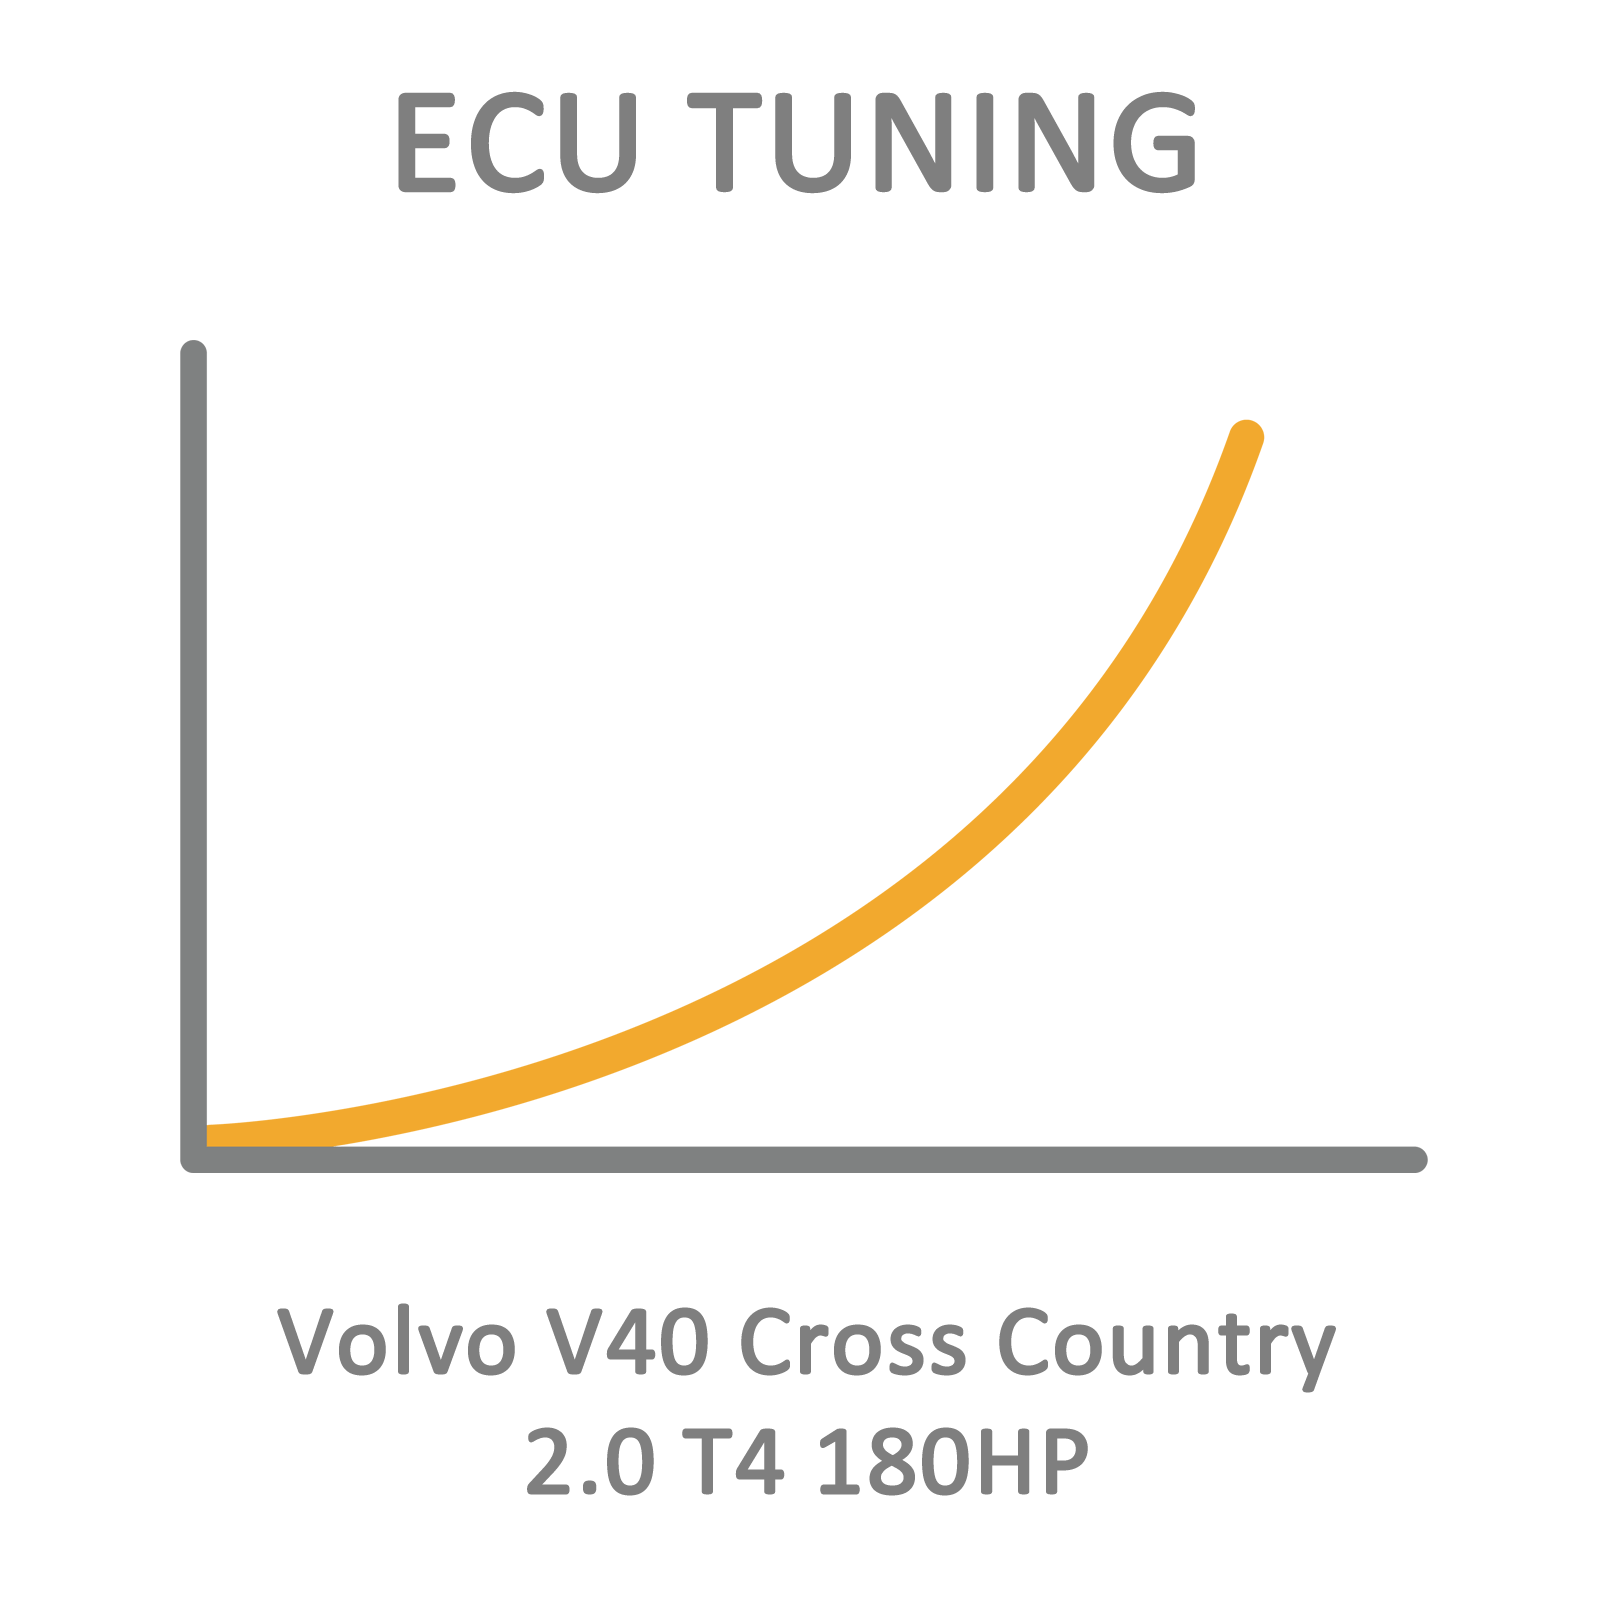 Volvo V40 Cross Country 2.0 T4 180HP ECU Tuning Remapping